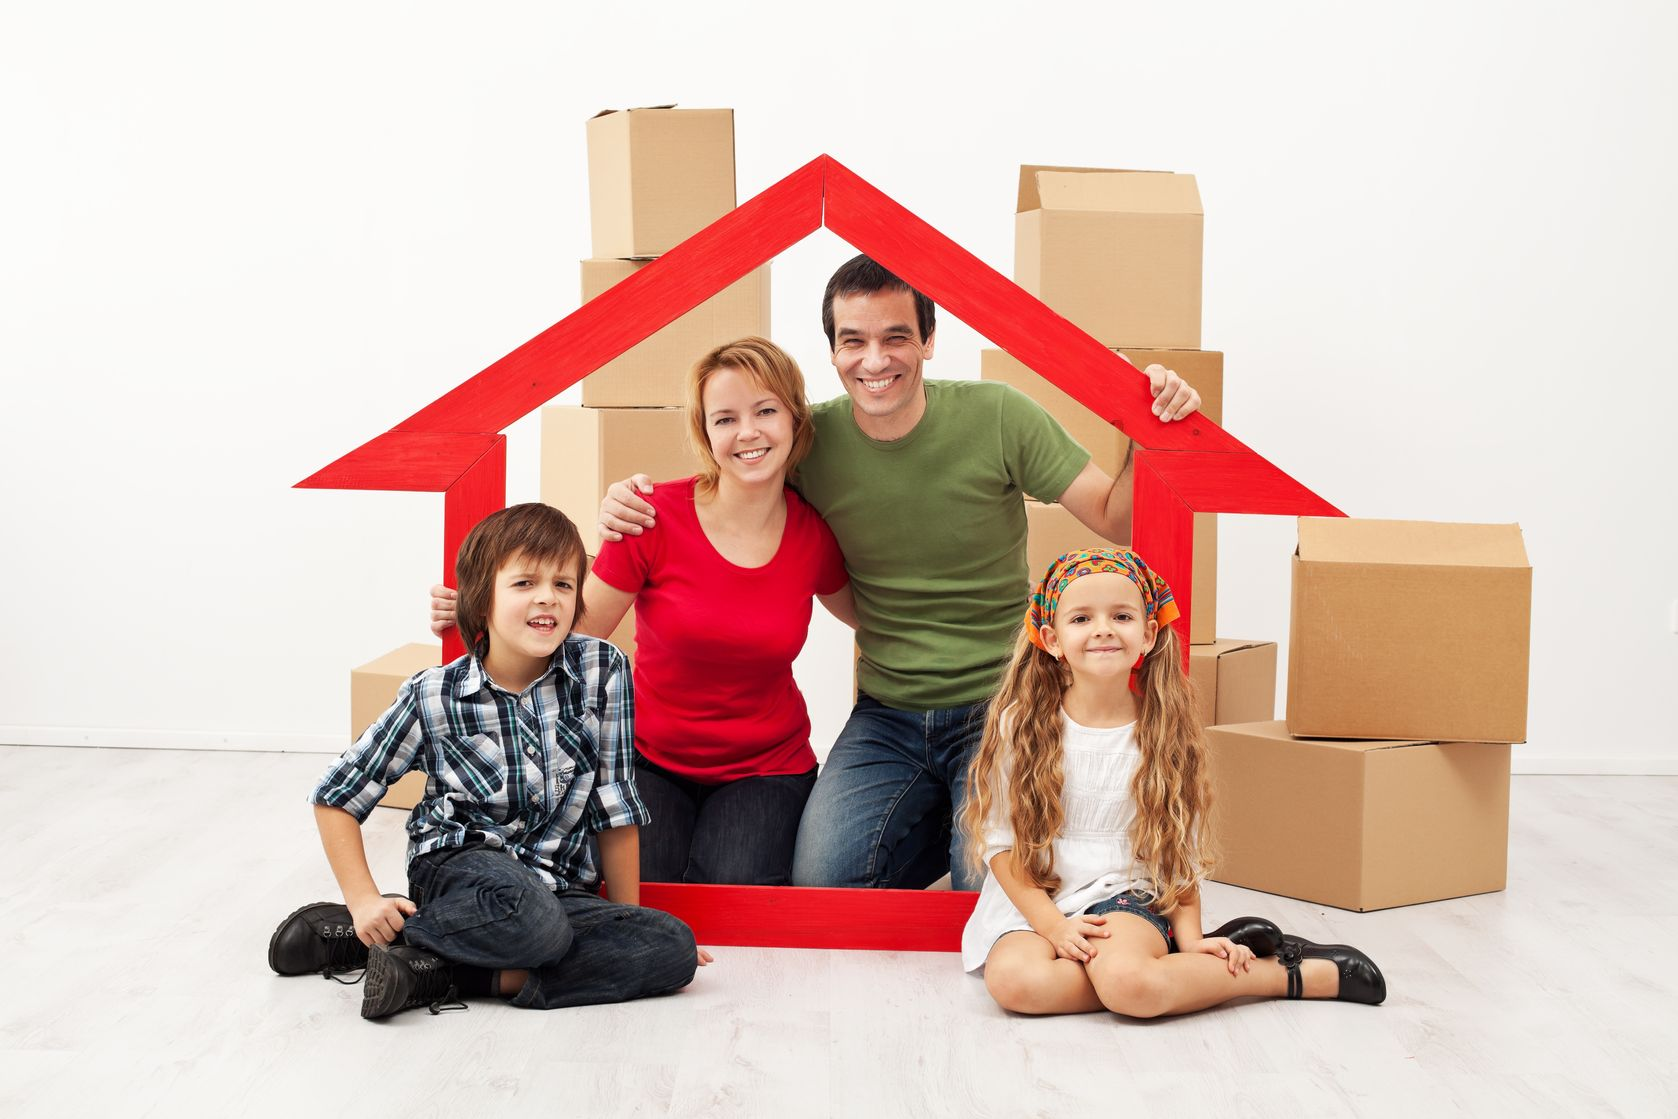 Costa Mesa Homeowners Insurance